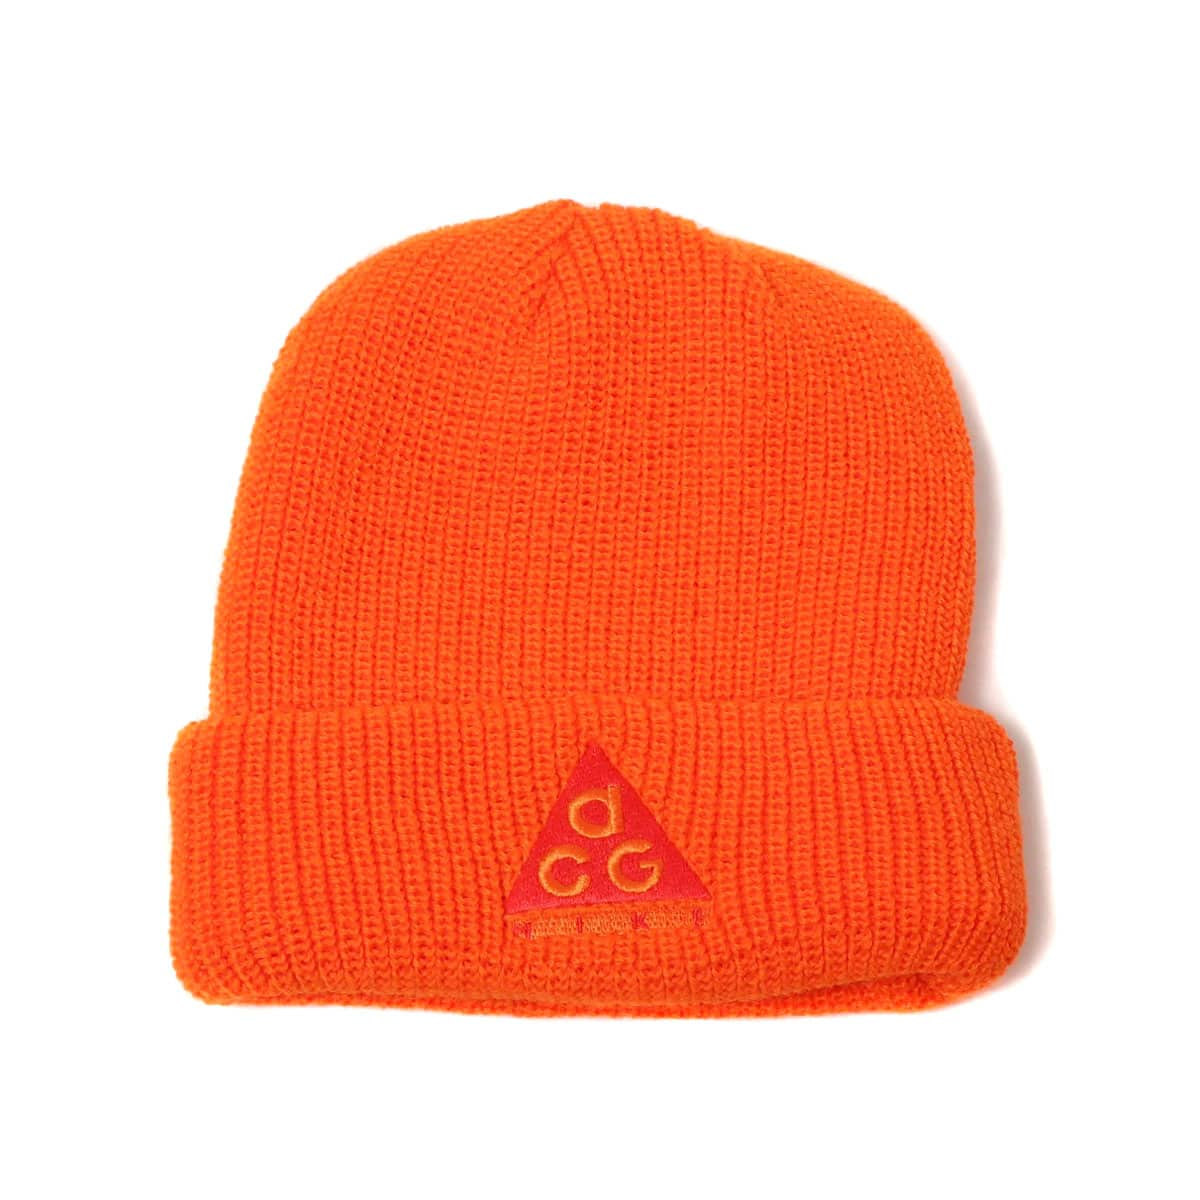 b3c6662d56dff NIKE U NSW BEANIE ACG SAFETY ORANGE HABANERO RED 19SU-S